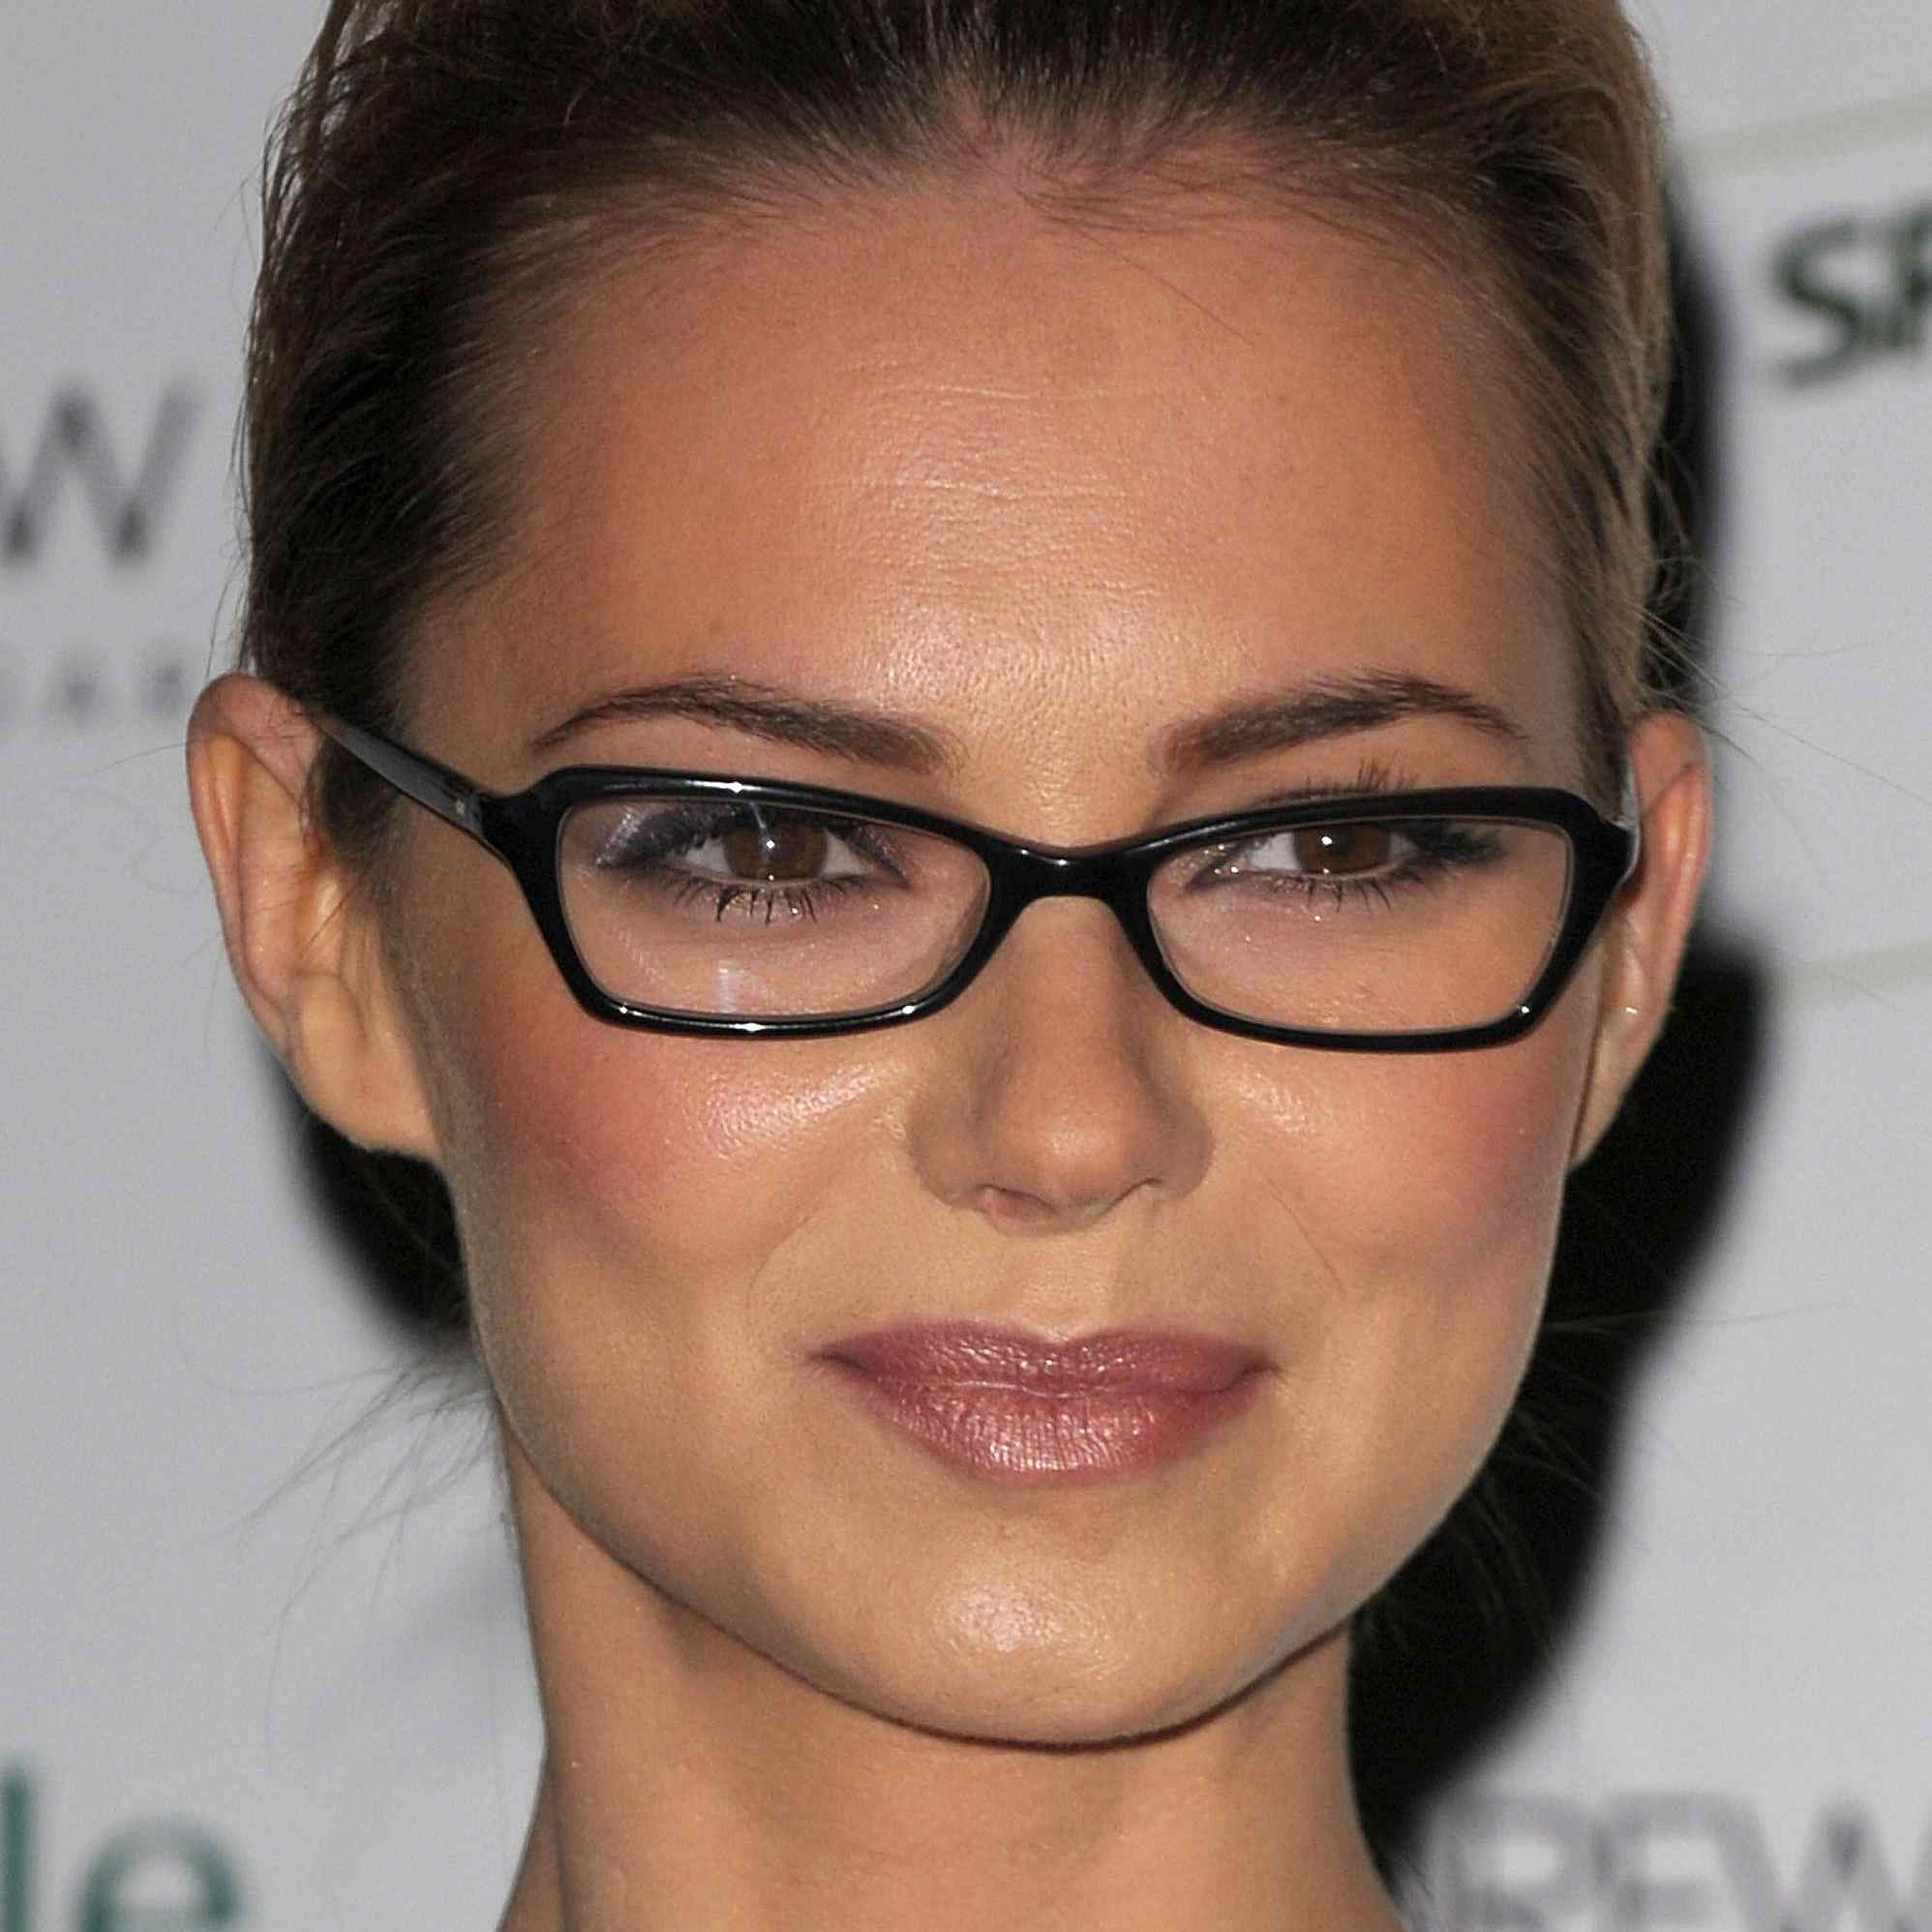 How To Find The Most Flattering Glasses For You